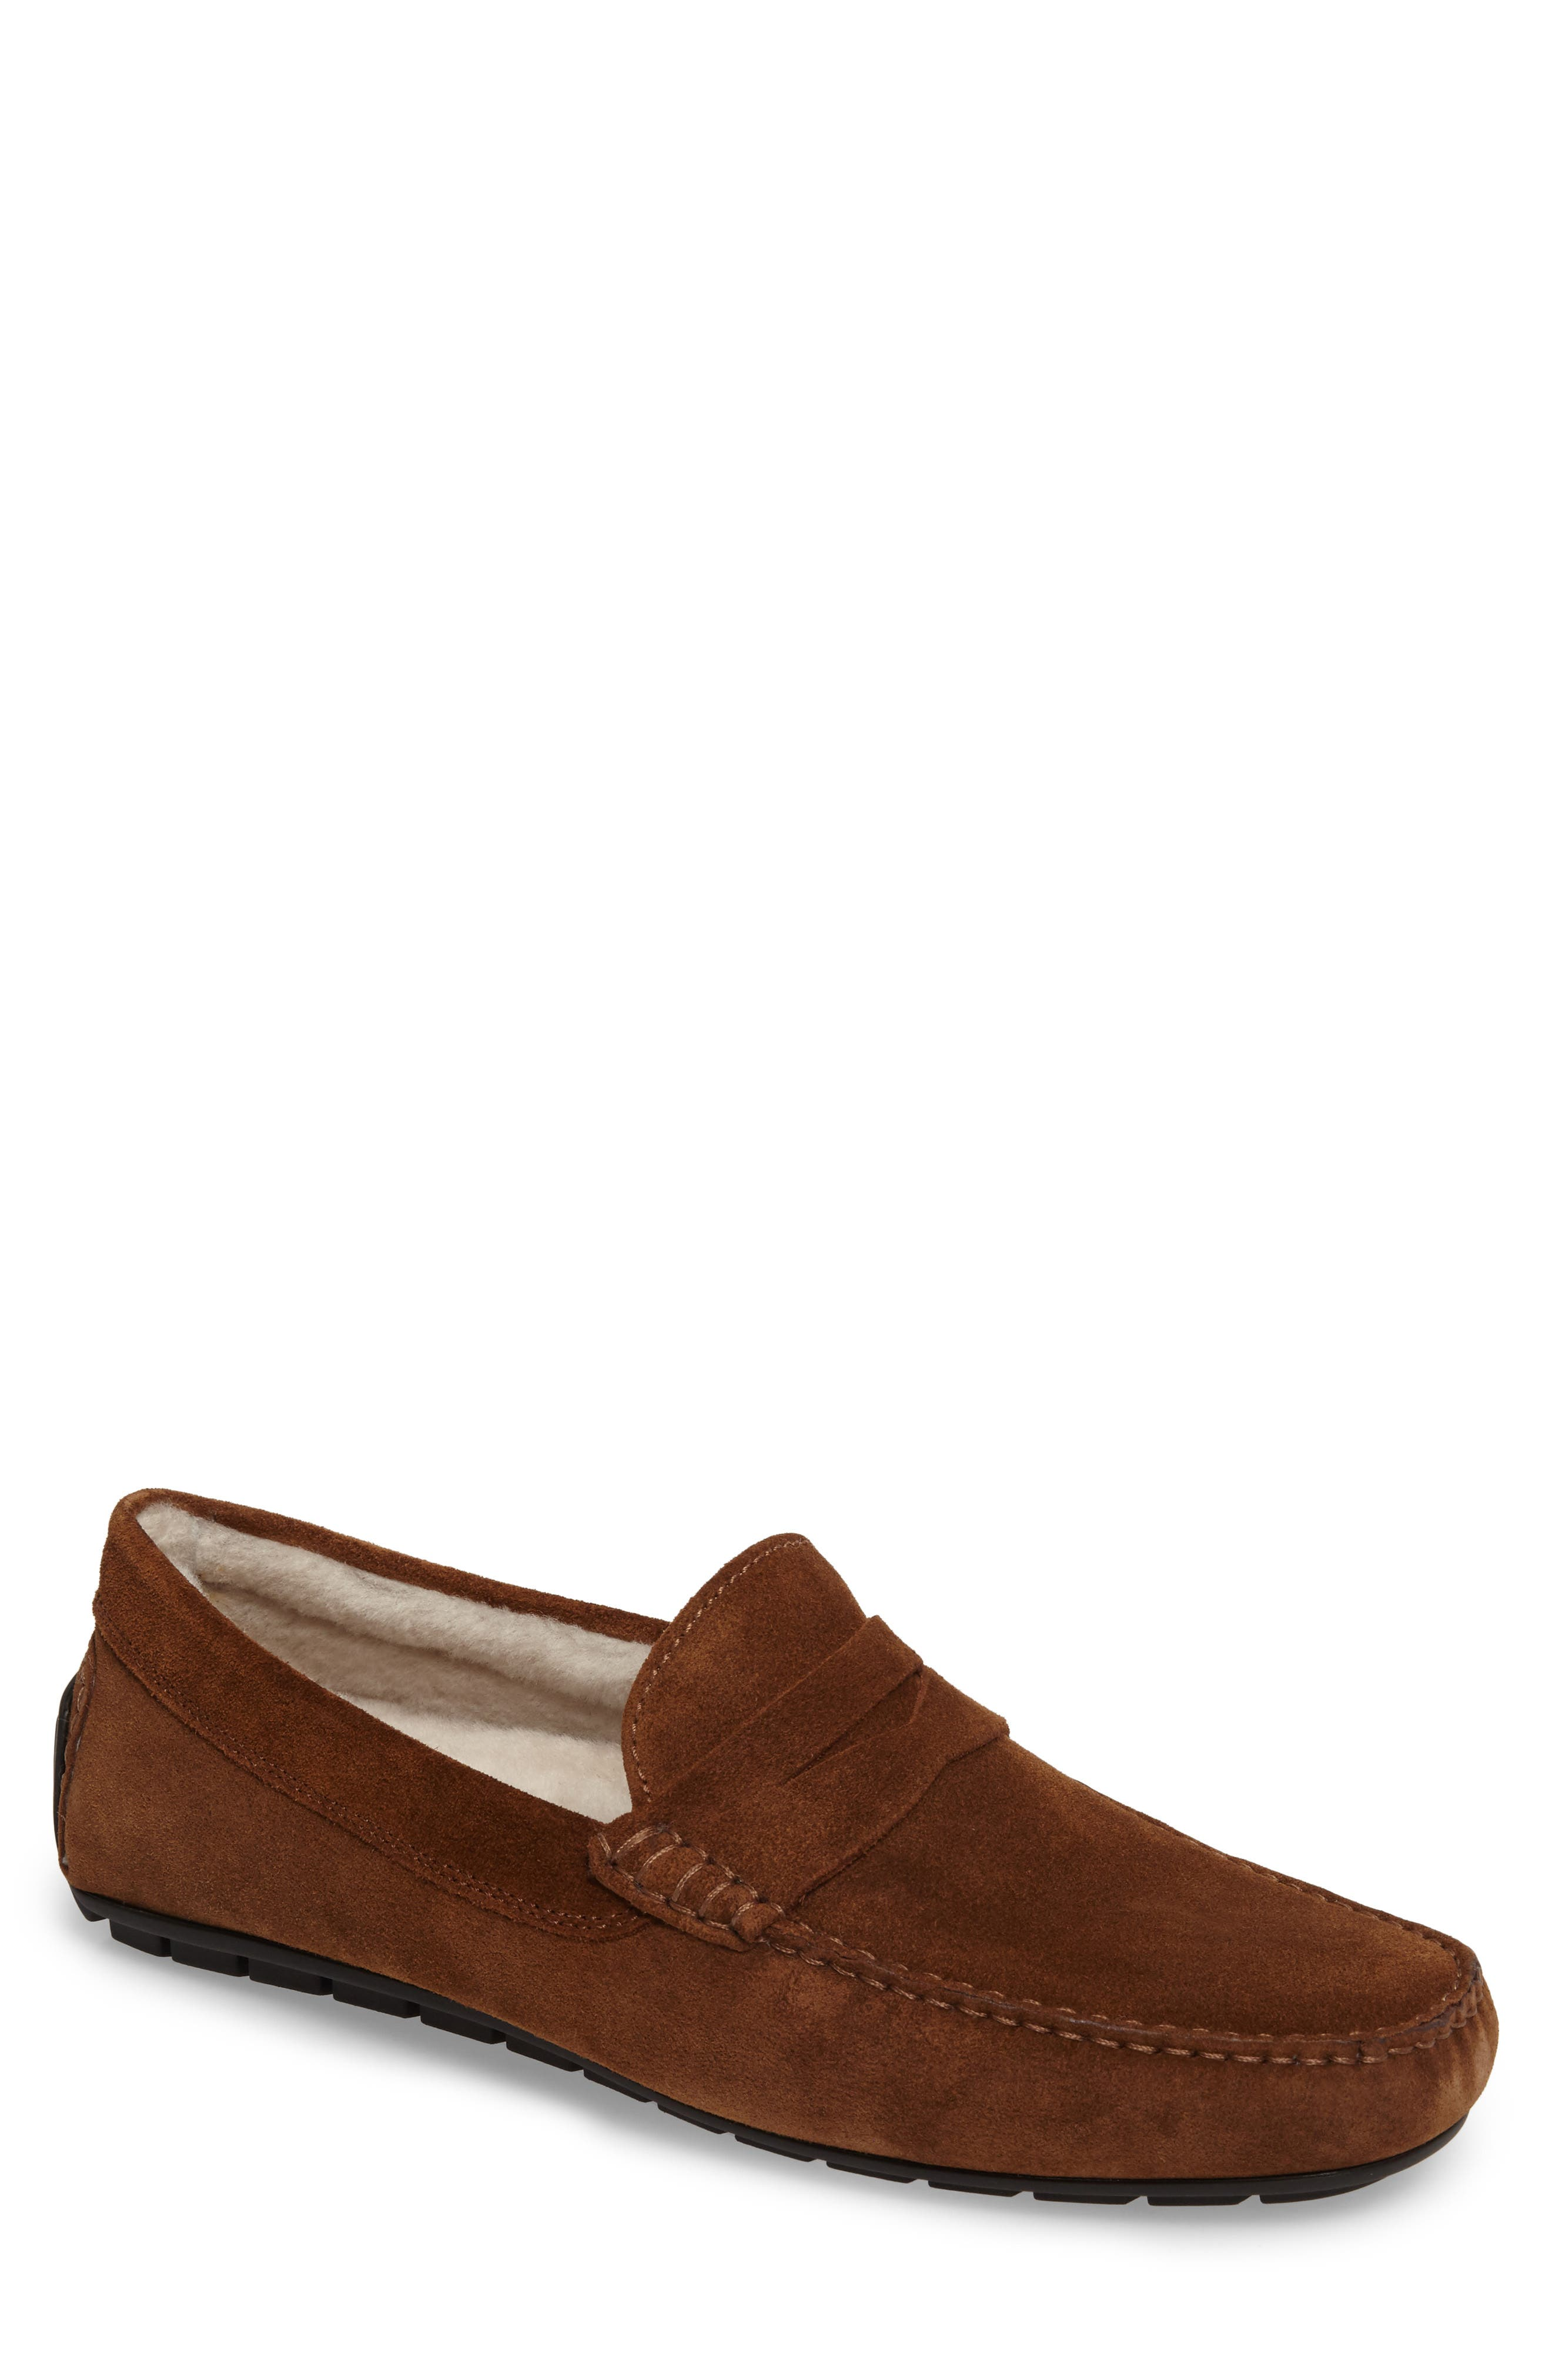 Main Image - To Boot New York Norse Penny Loafer with Genuine Shearling (Men)